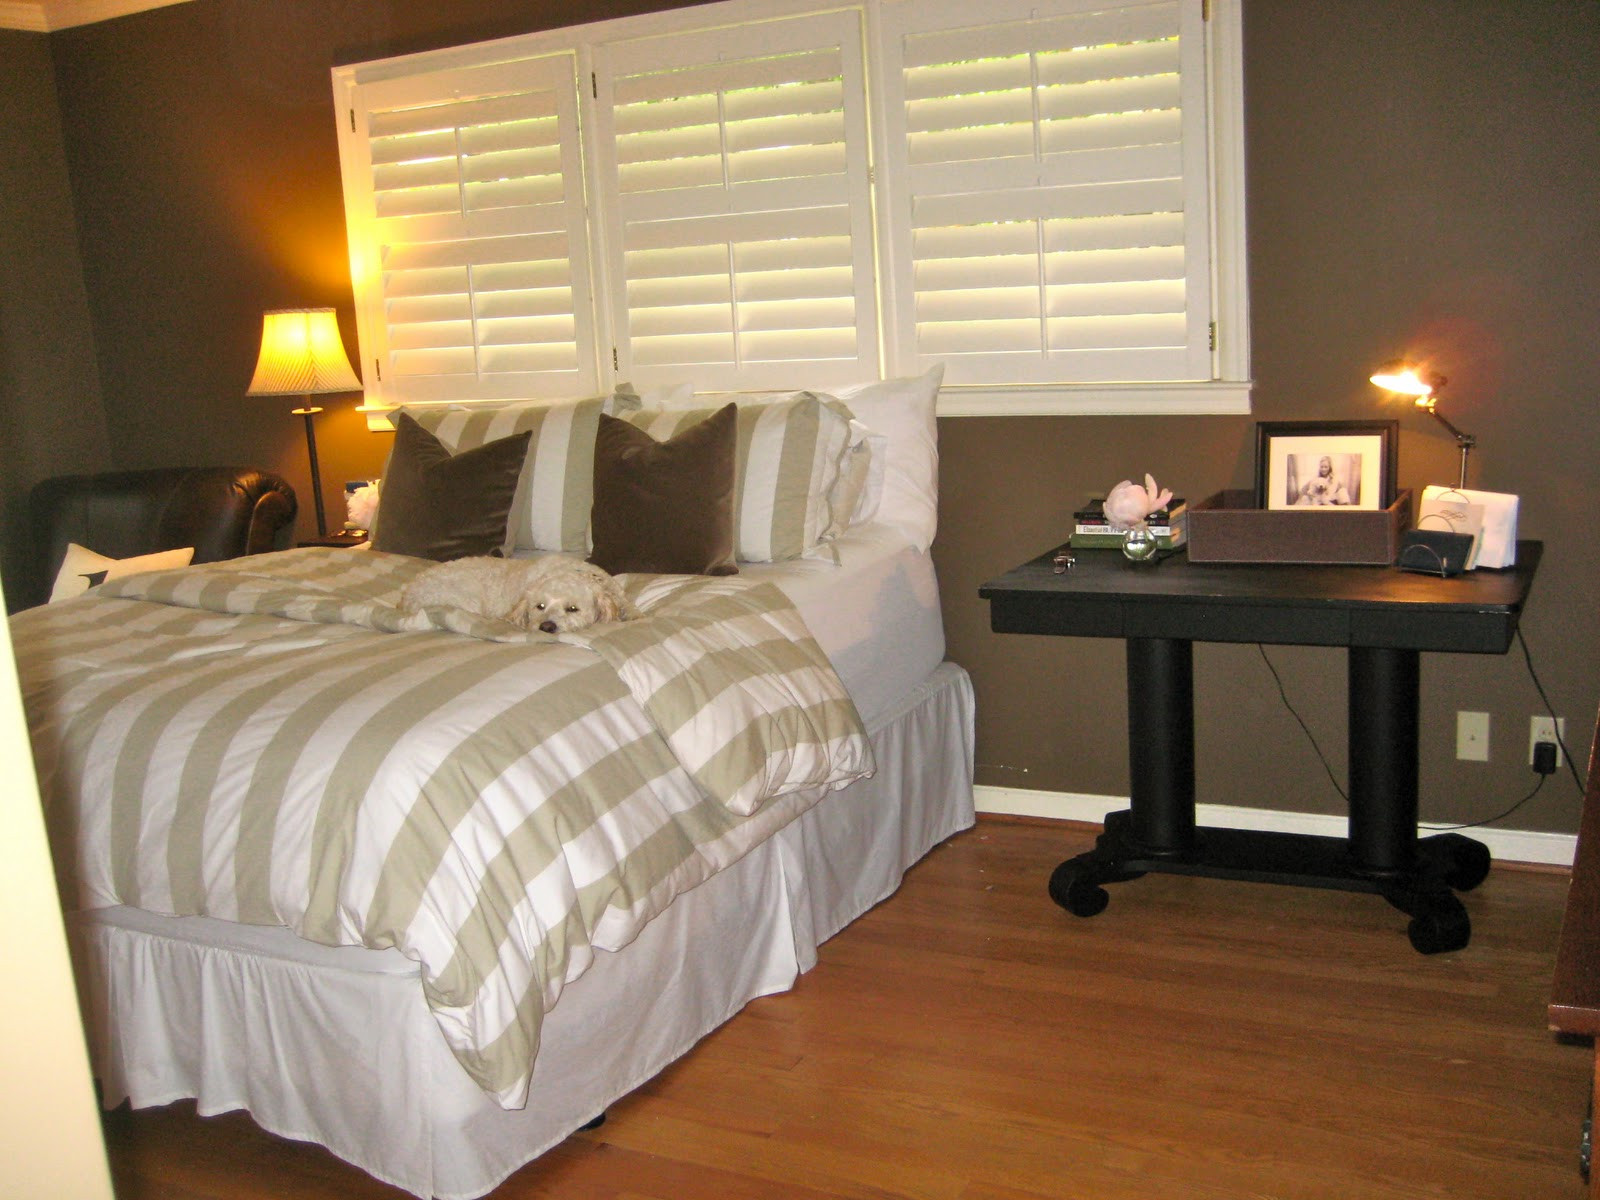 Best ideas about DIY Small Bedroom Makeover . Save or Pin Jenny Steffens Hobick Home Bedroom Makeover Now.